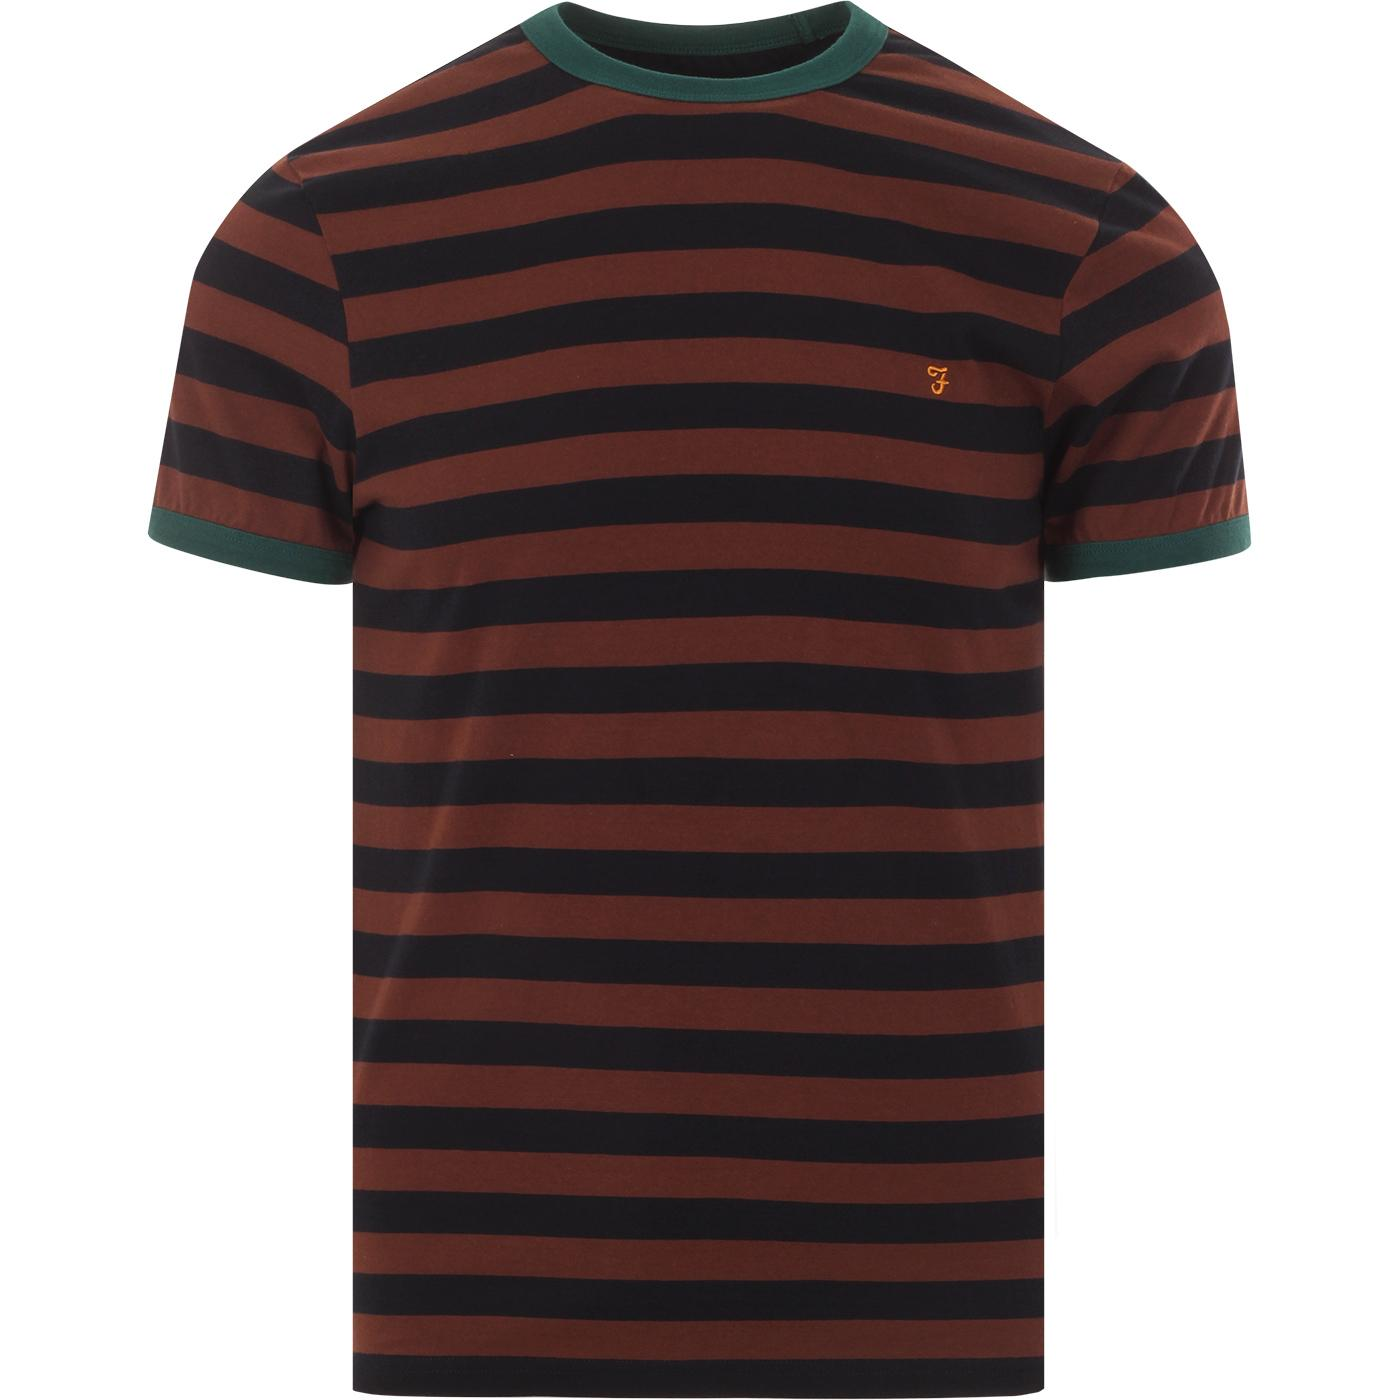 Belgrove FARAH Mens Retro Mod Striped T-Shirt (FB)